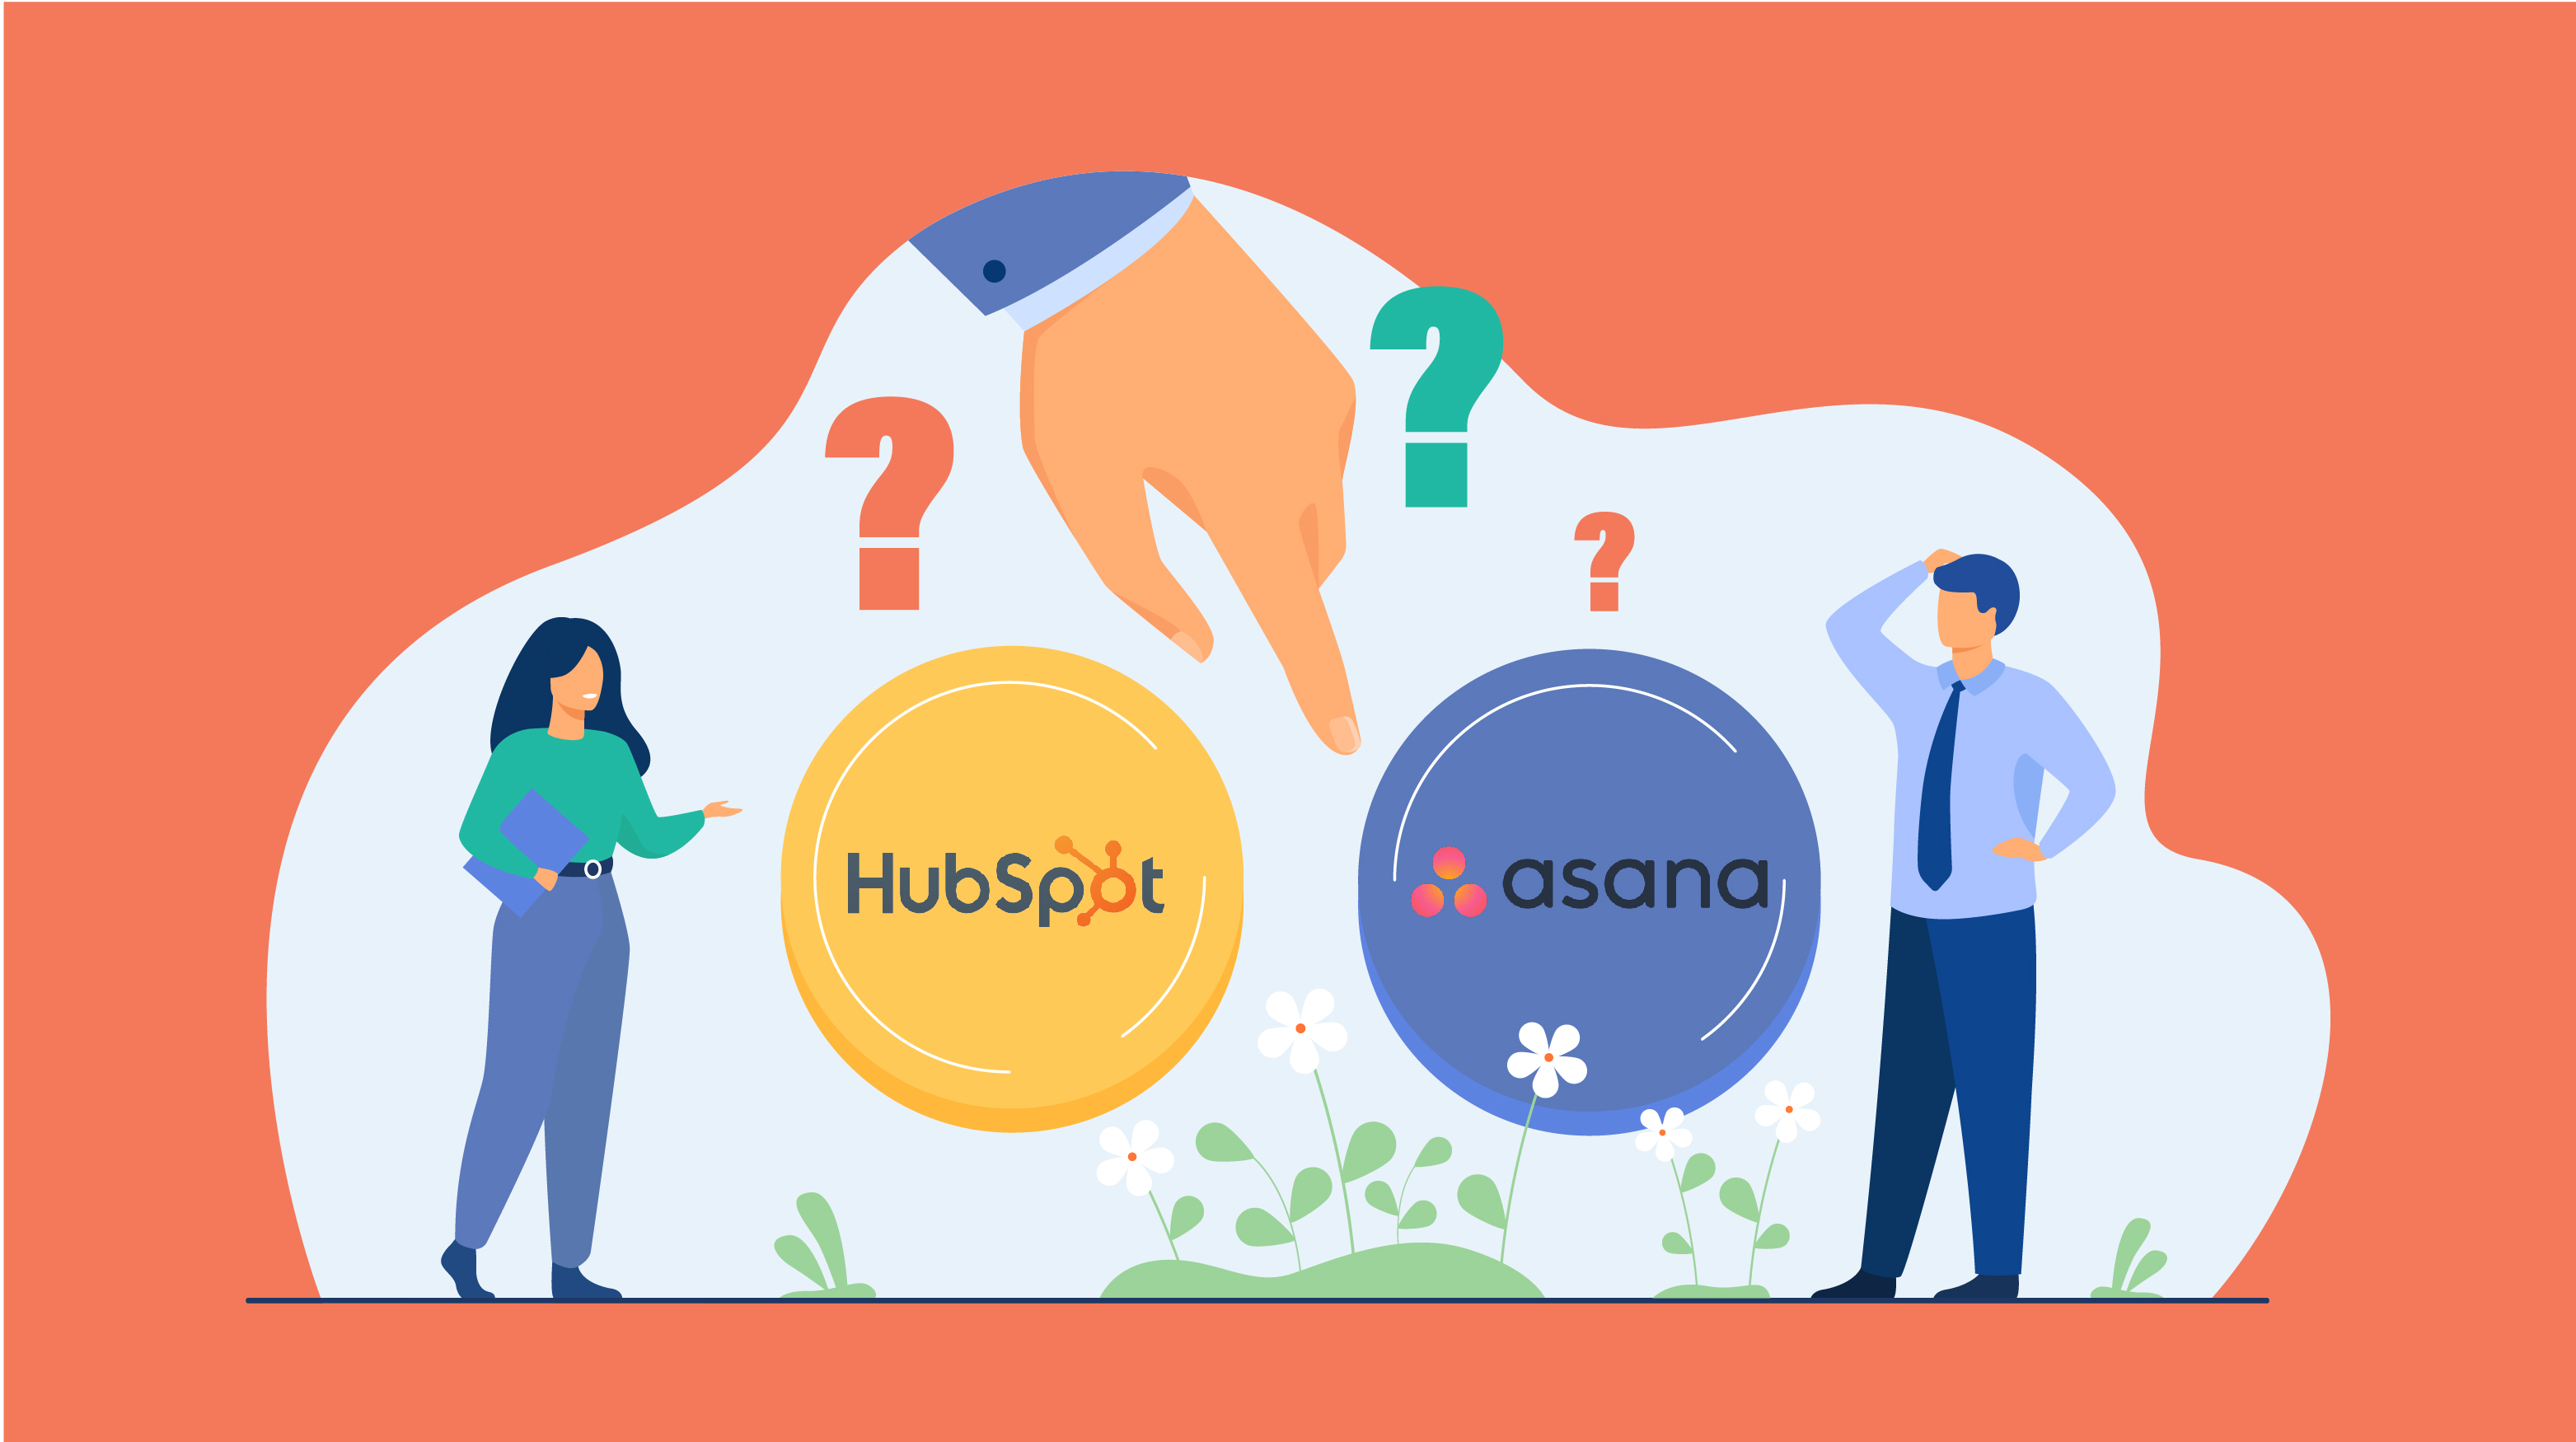 HubSpot vs Asana- Which is the best CRM for you in 2021?